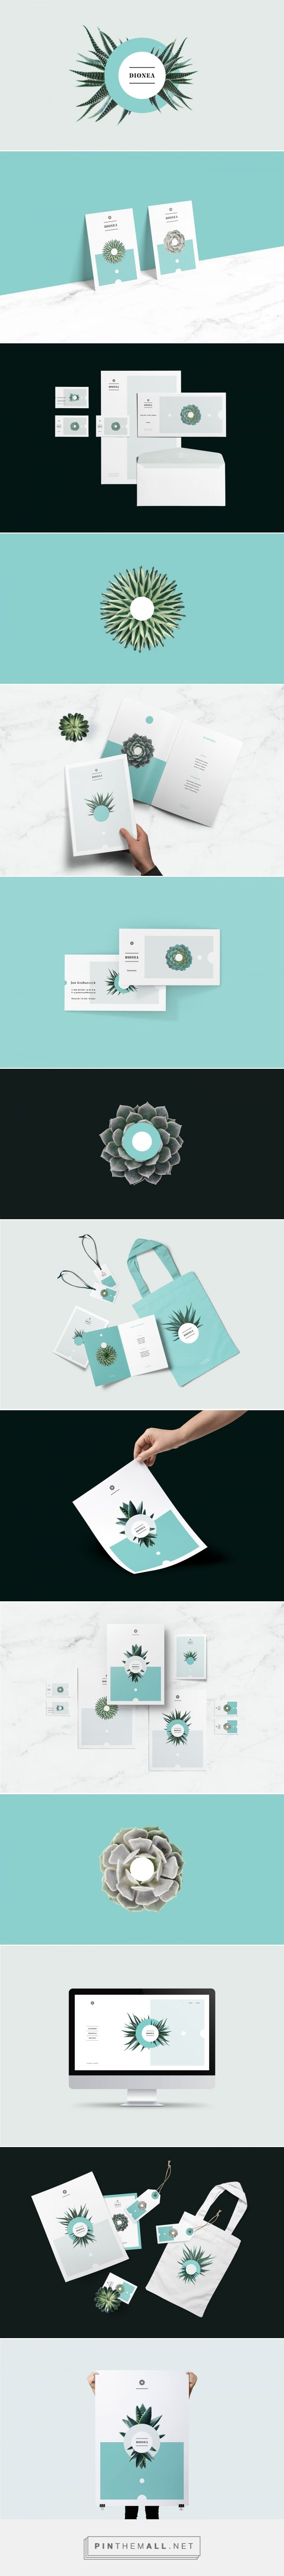 Dionea Branding by Przemek Bizori | Fivestar Branding Agency – Design and Branding Agency & Curated Inspiration Gallery